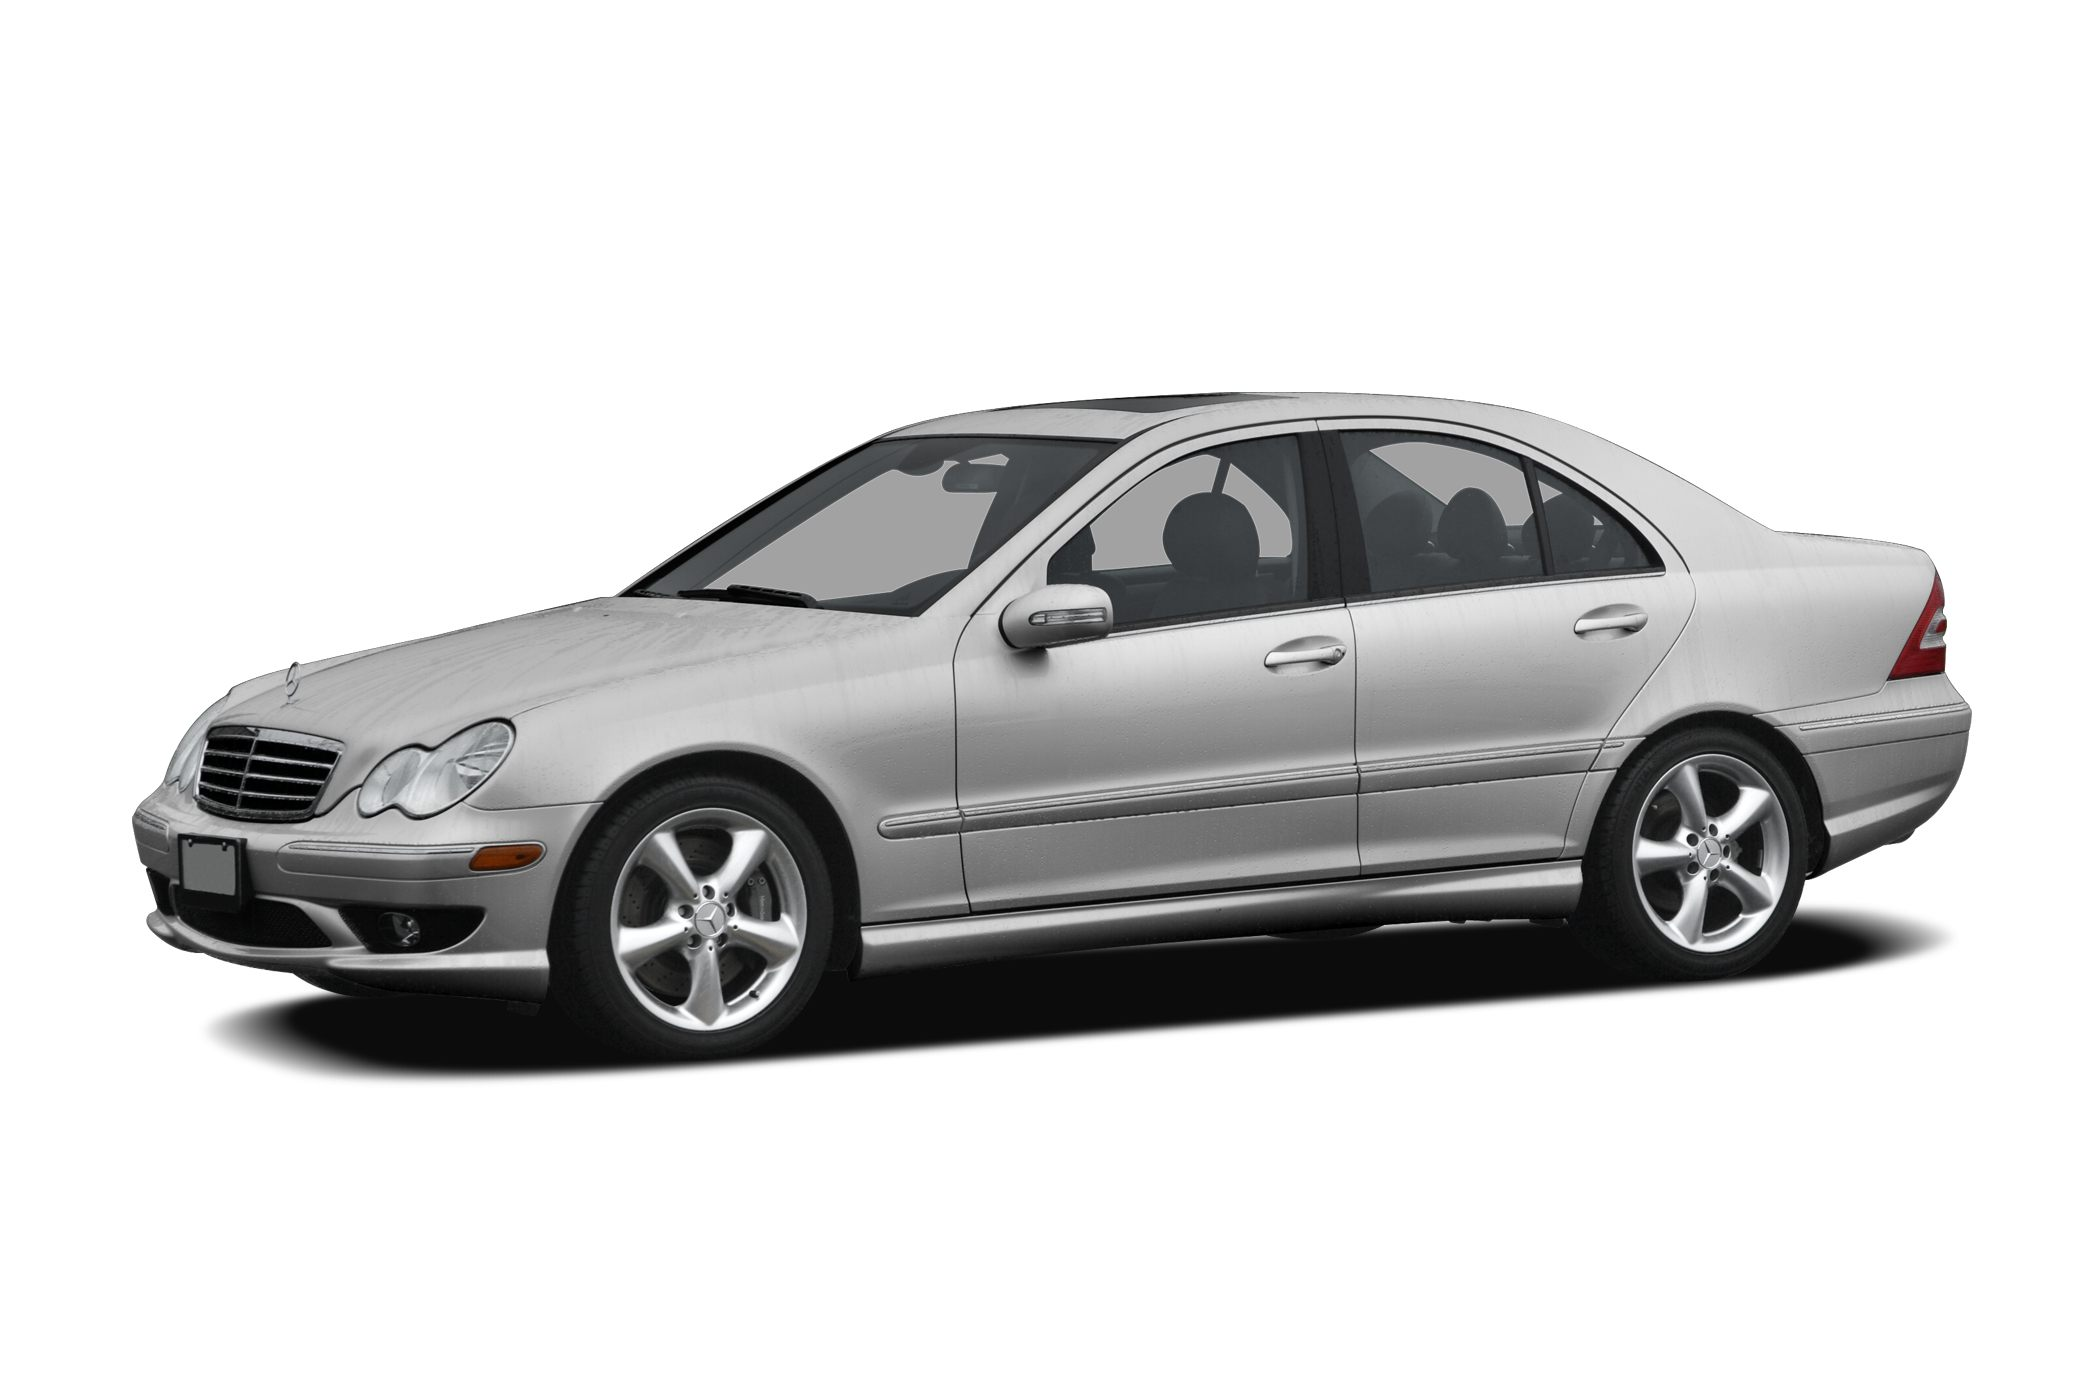 2006 Mercedes-Benz C-Class C350 4MATIC Sedan for sale in Lexington for $9,795 with 97,000 miles.